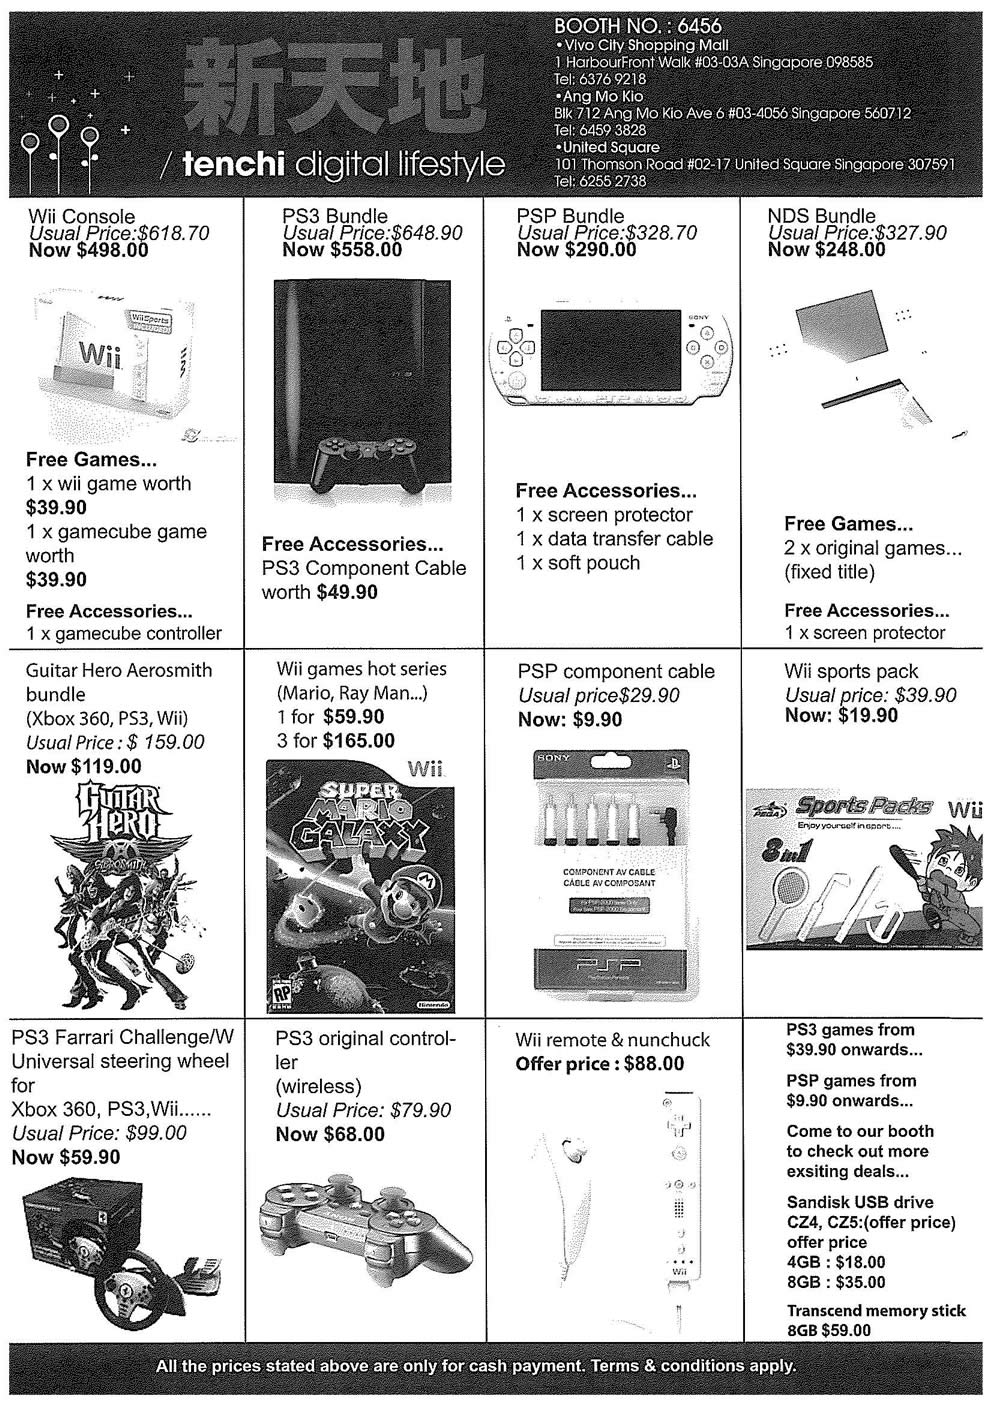 Comex 2008 price list image brochure of Tenchi